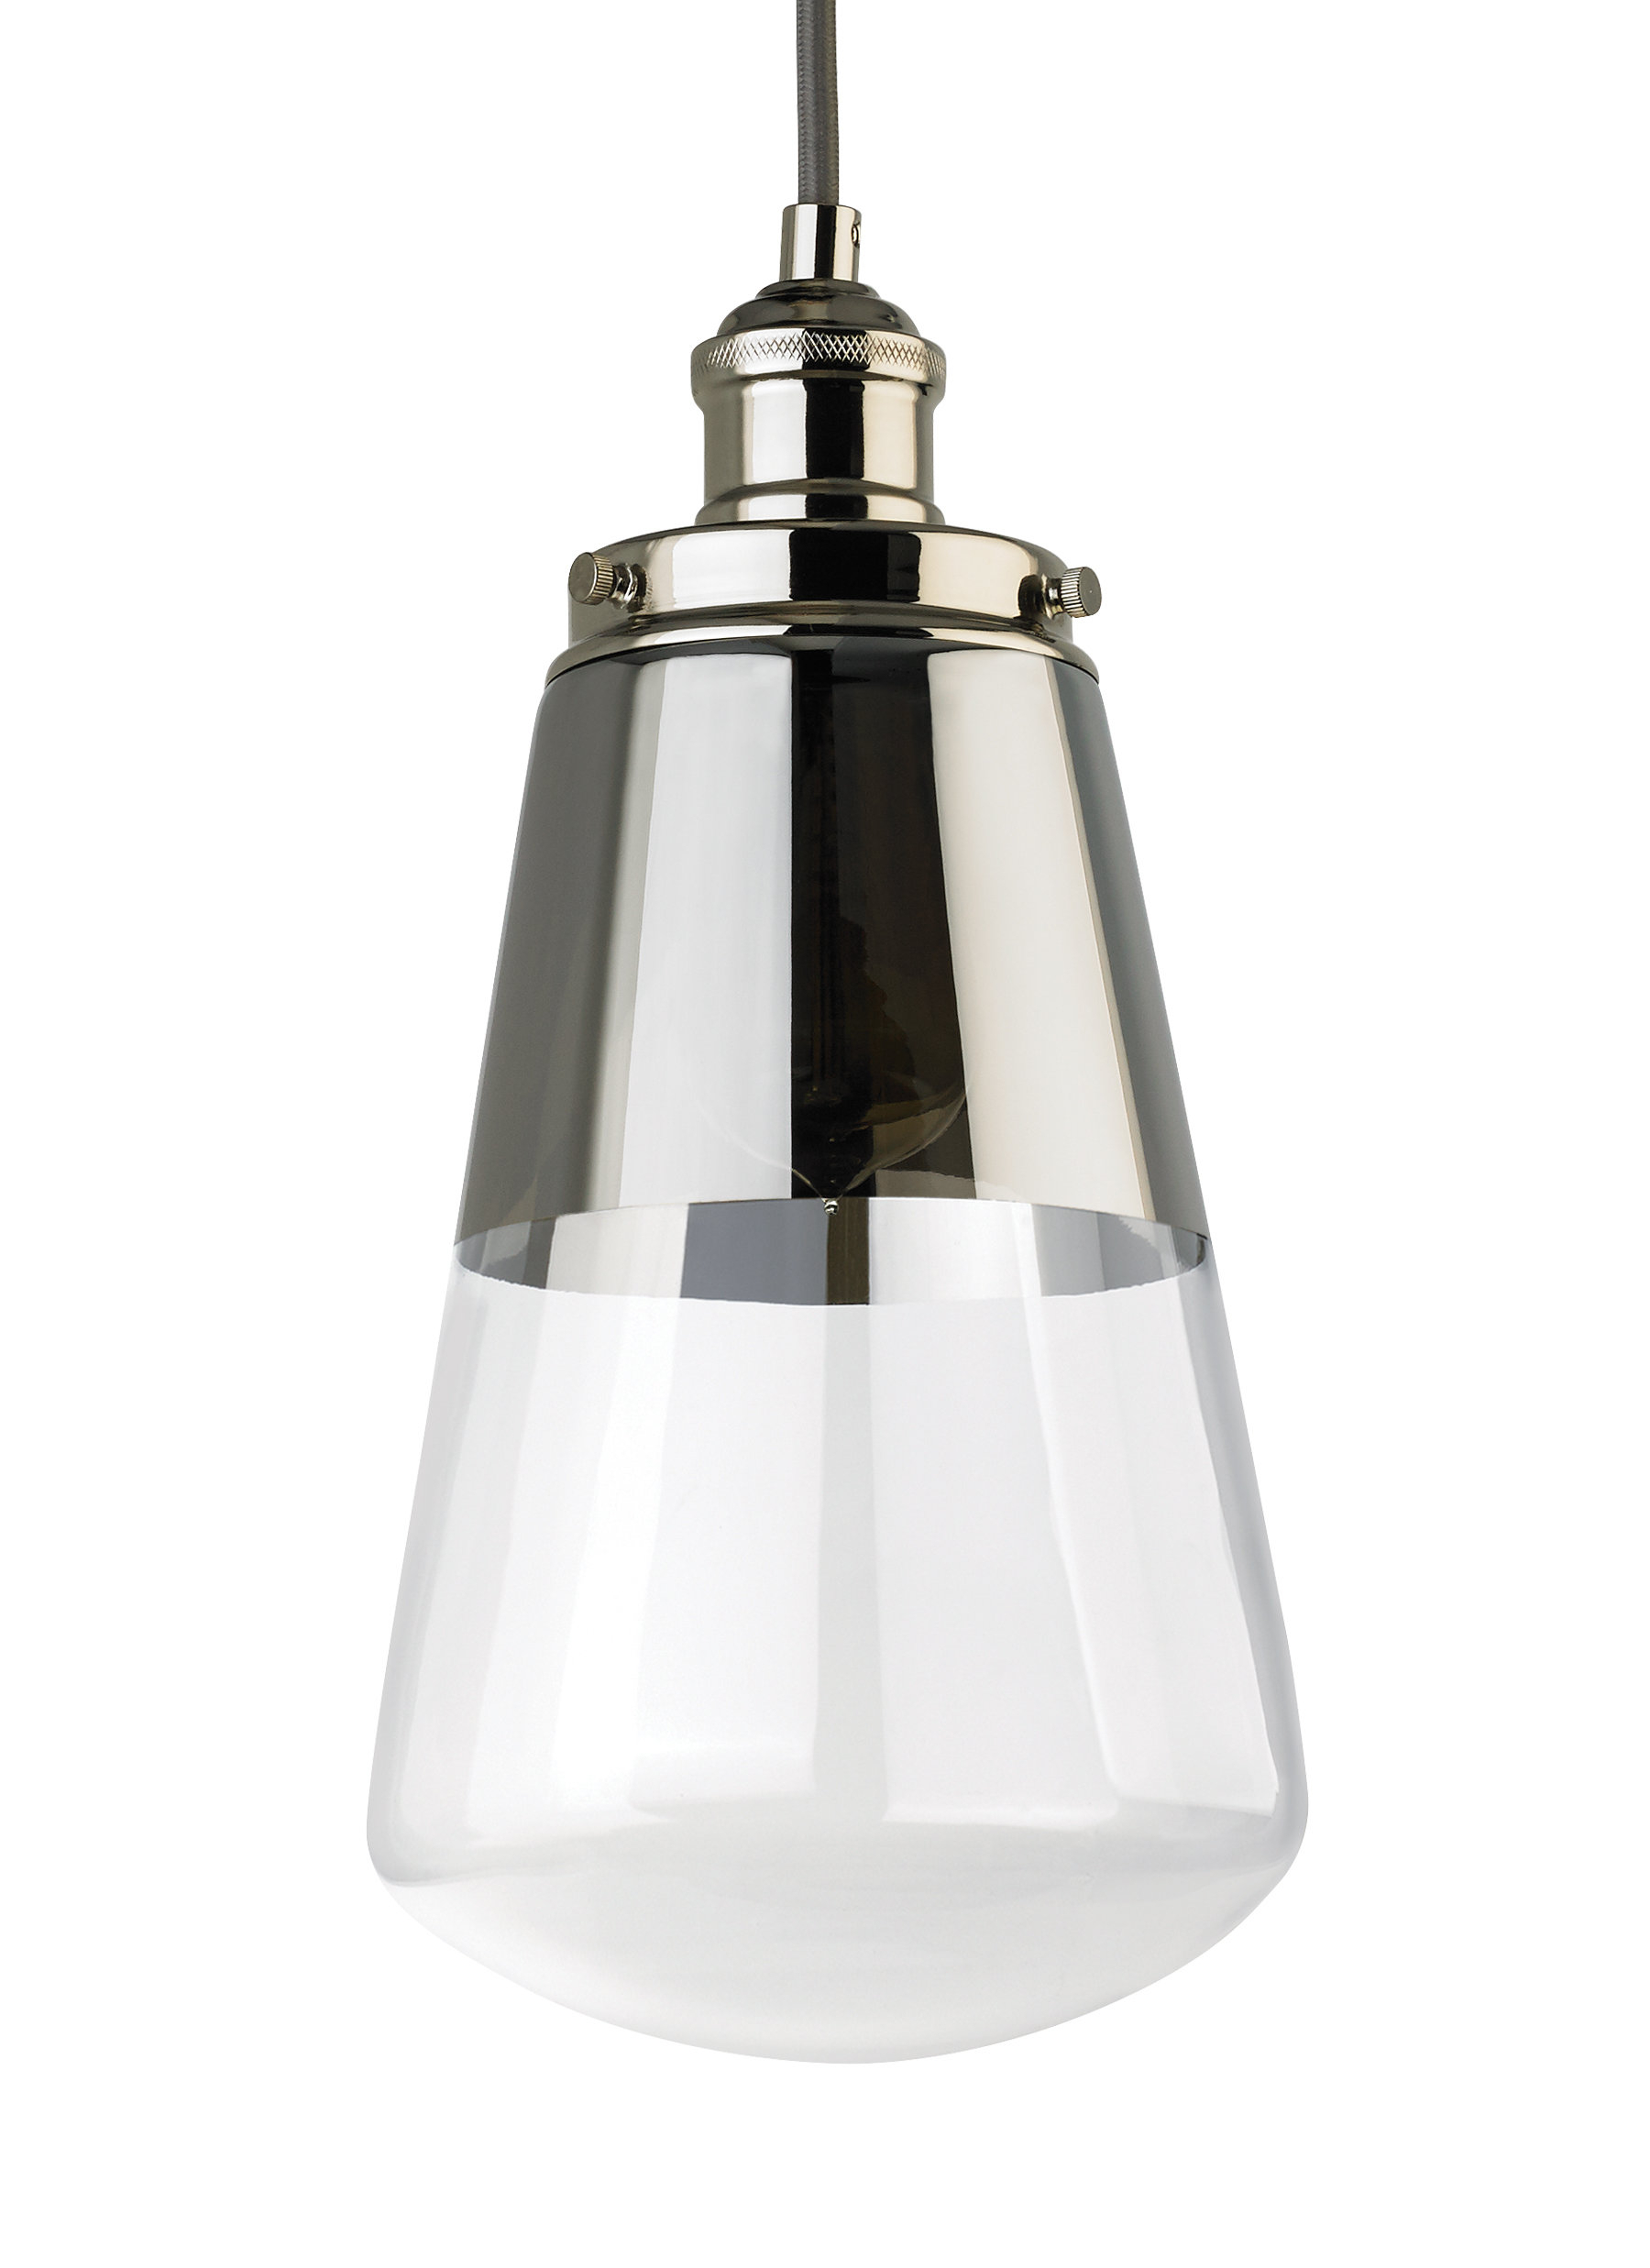 Jarne 1 Light Bulb Pendant Throughout Well Known Ammerman 1 Light Cone Pendants (View 10 of 20)